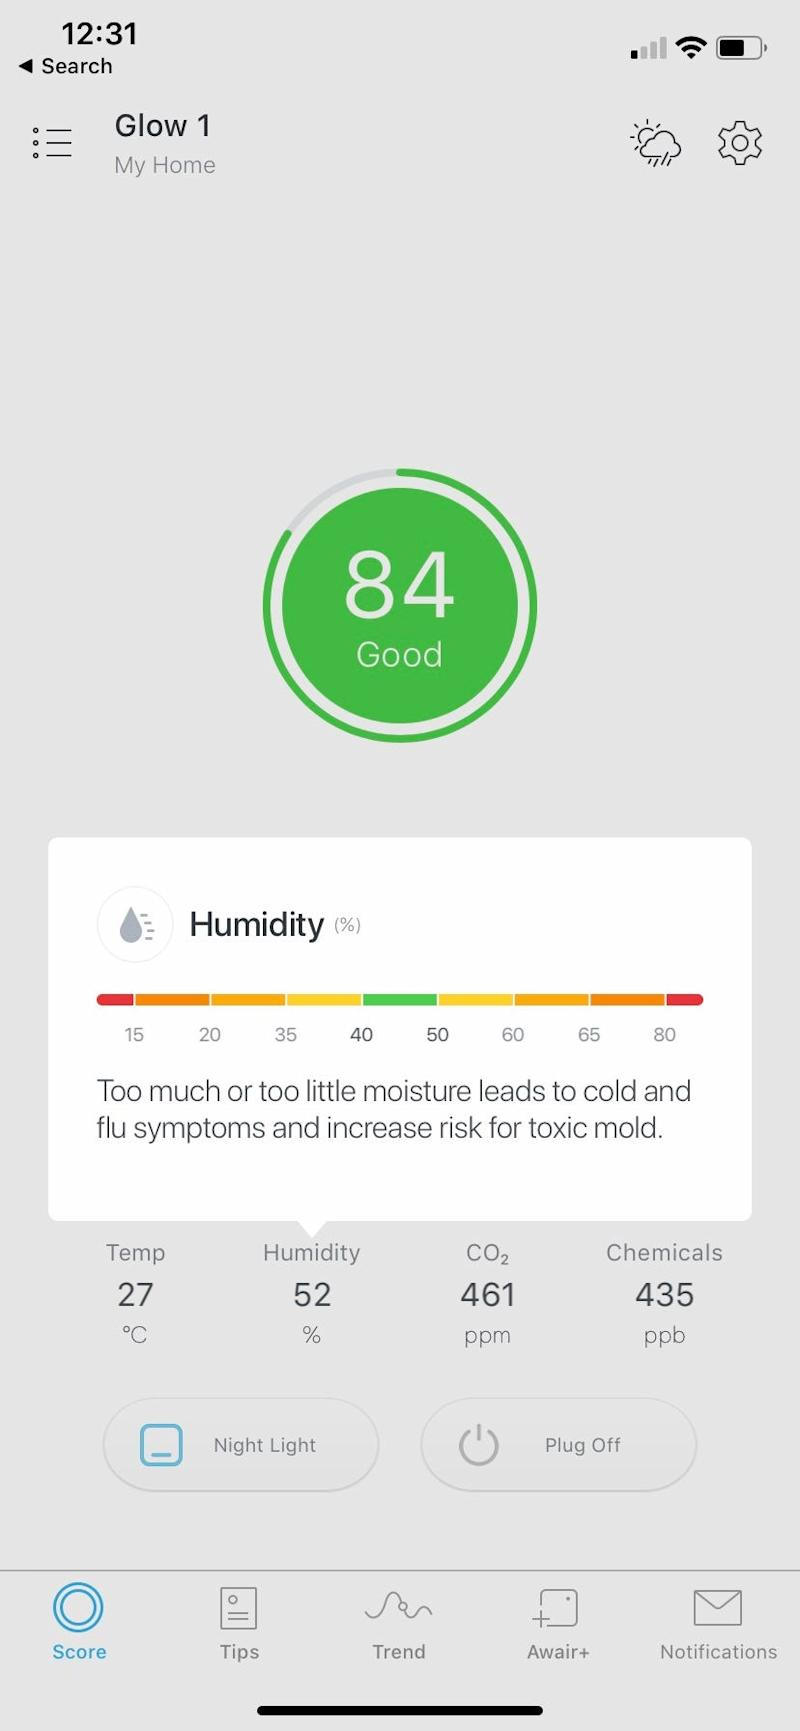 The Awair Glow C mobile app shows good air quality overall, but warns about rising humidity.